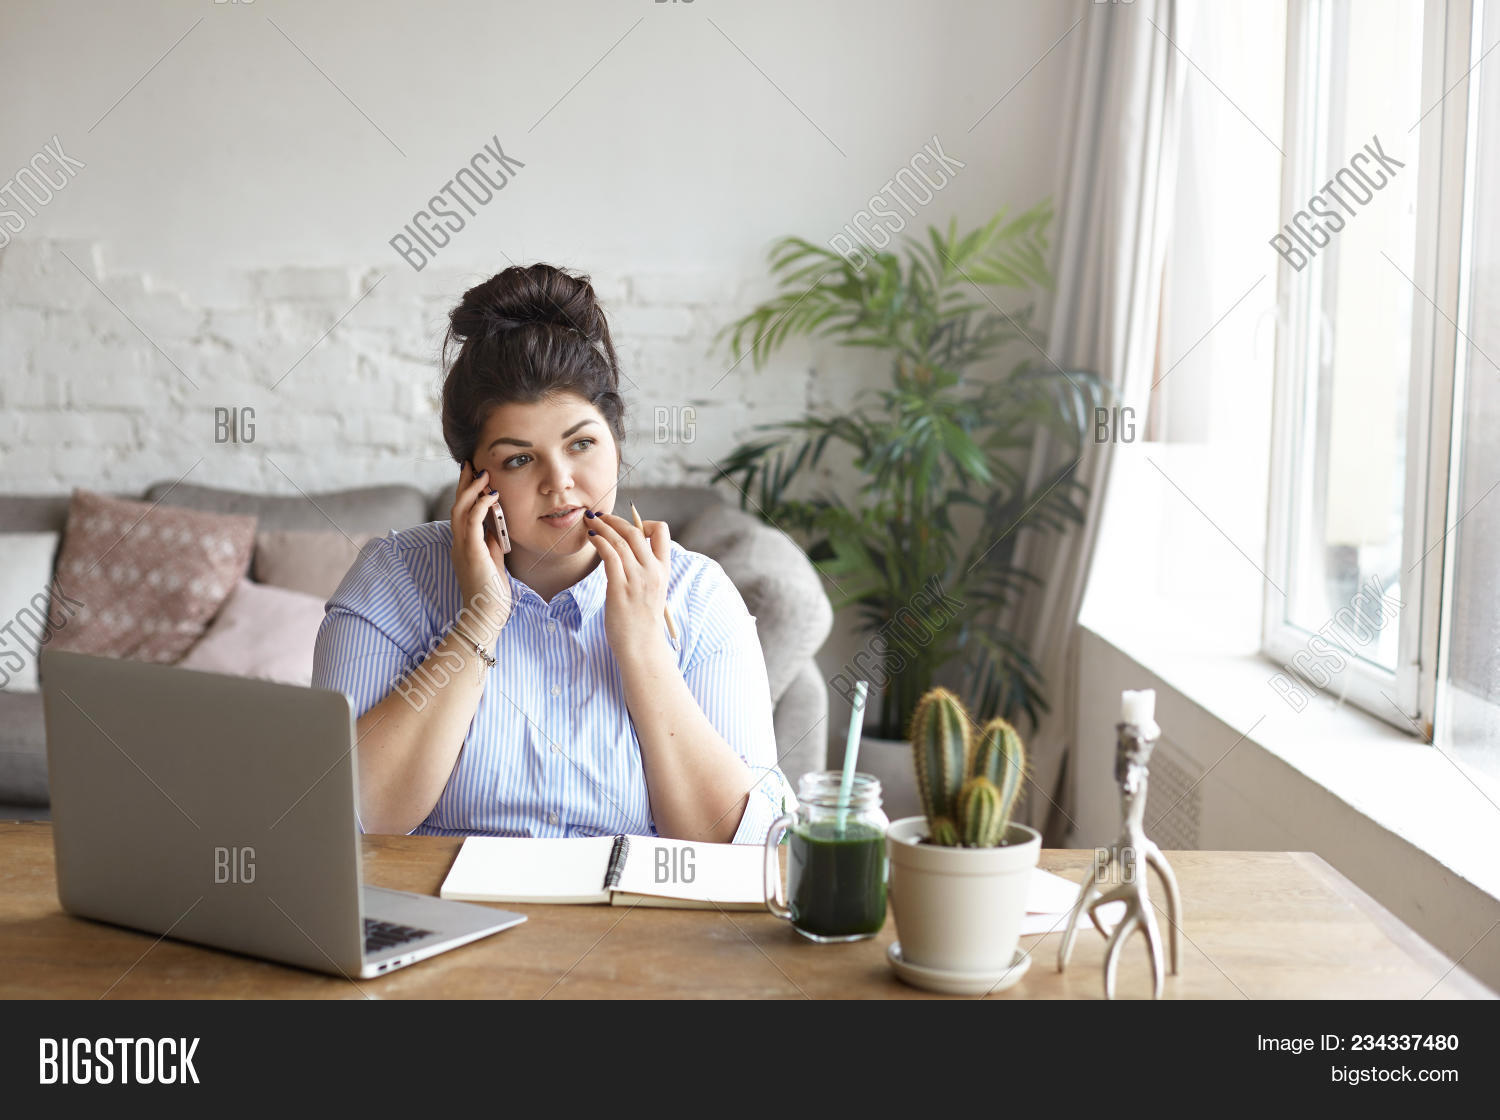 home office multitasking. Horizontal Shot Of Concentrated Chubby Young Woman With Hair Bun Multitasking At Home Office, Sittin Office I